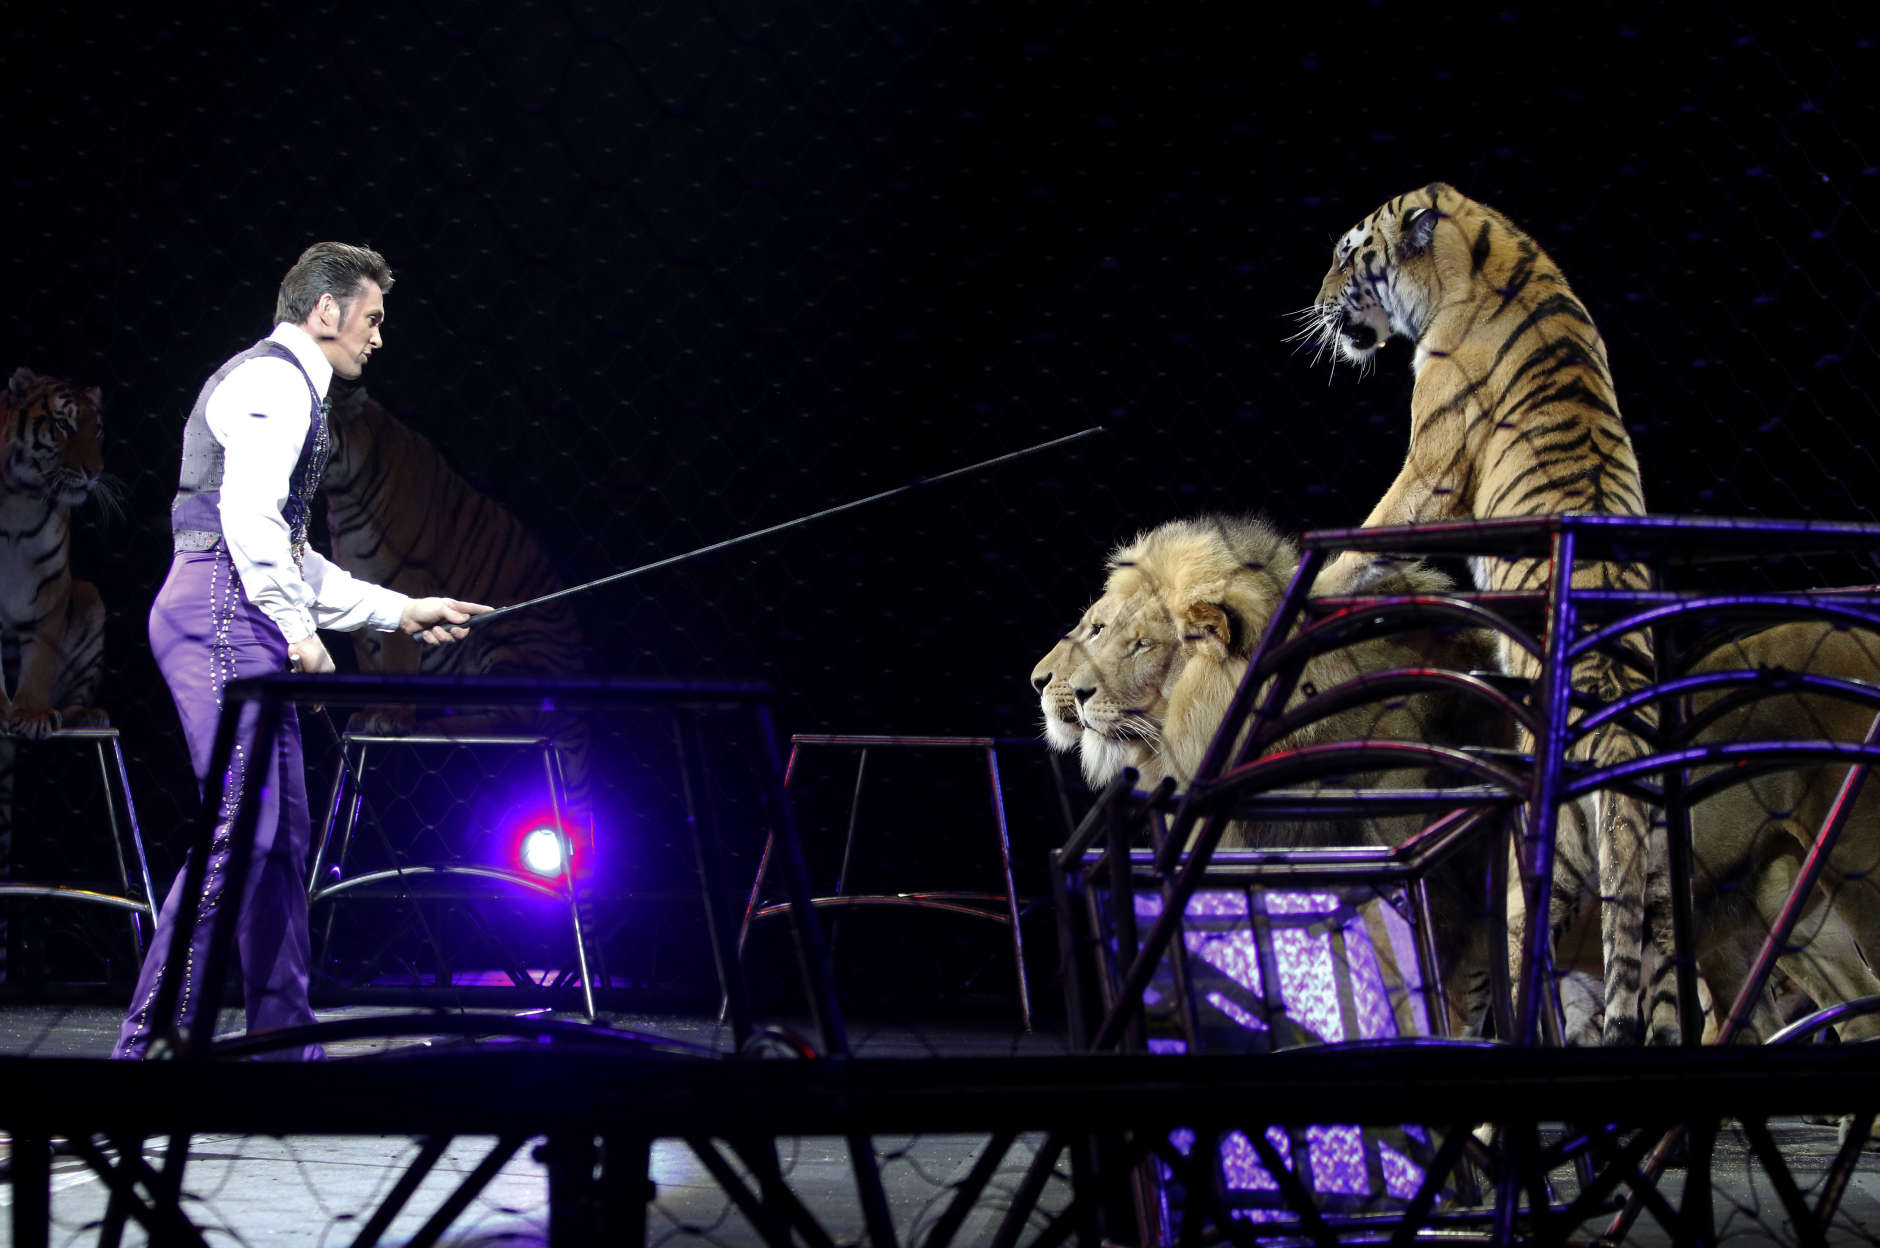 Big-cat trainer Alexander Lacey performs with lions and tigers Sunday, May 1, 2016, in Providence, R.I., during the show where Asian elephants made their final performance in the Ringling Bros. and Barnum & Bailey Circus.  (AP Photo/Bill Sikes)